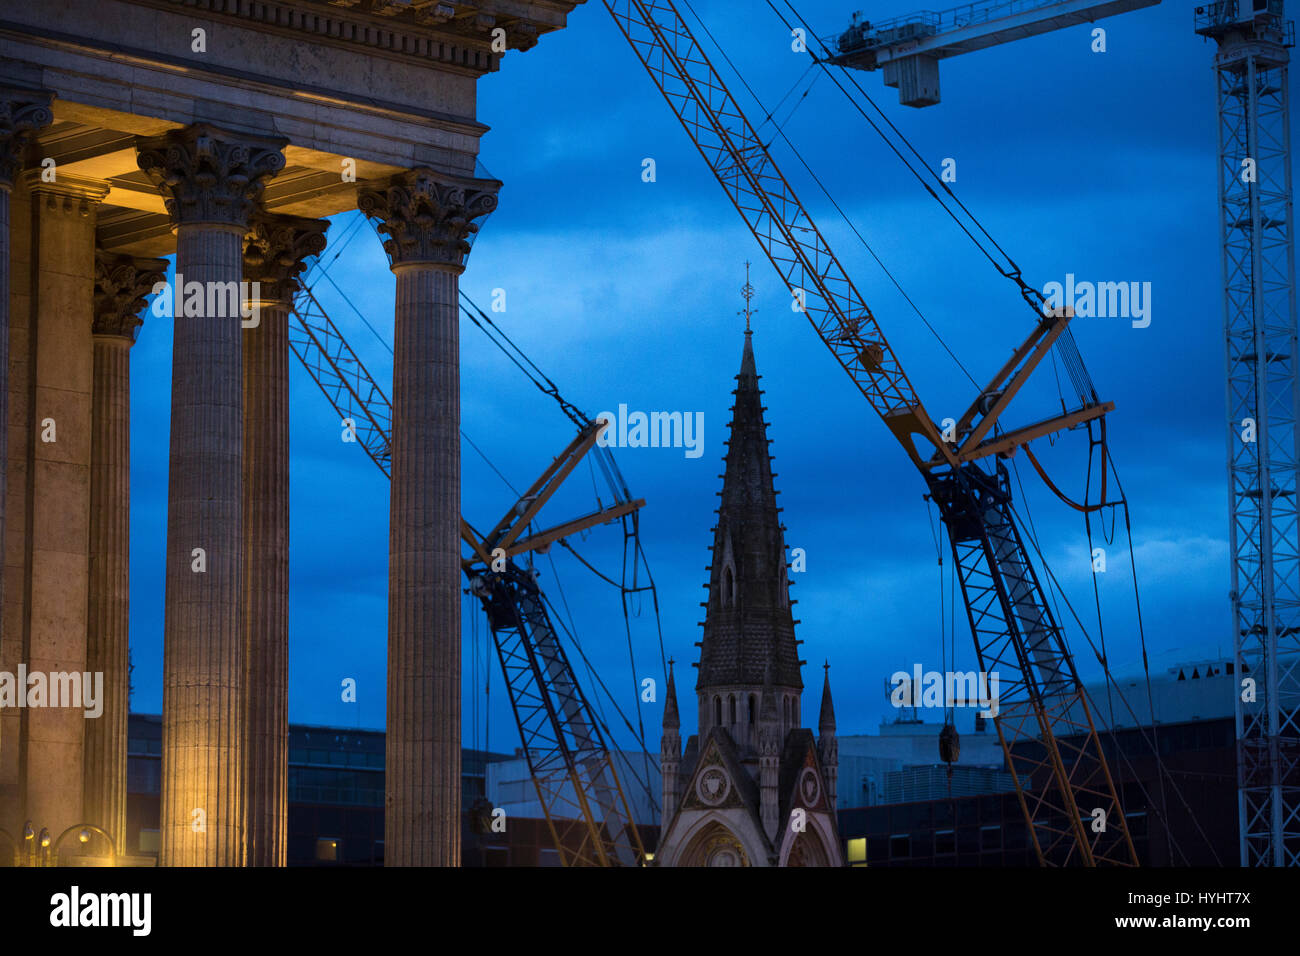 Cranes on a building site in the centre of Birmingham, UK - Stock Image